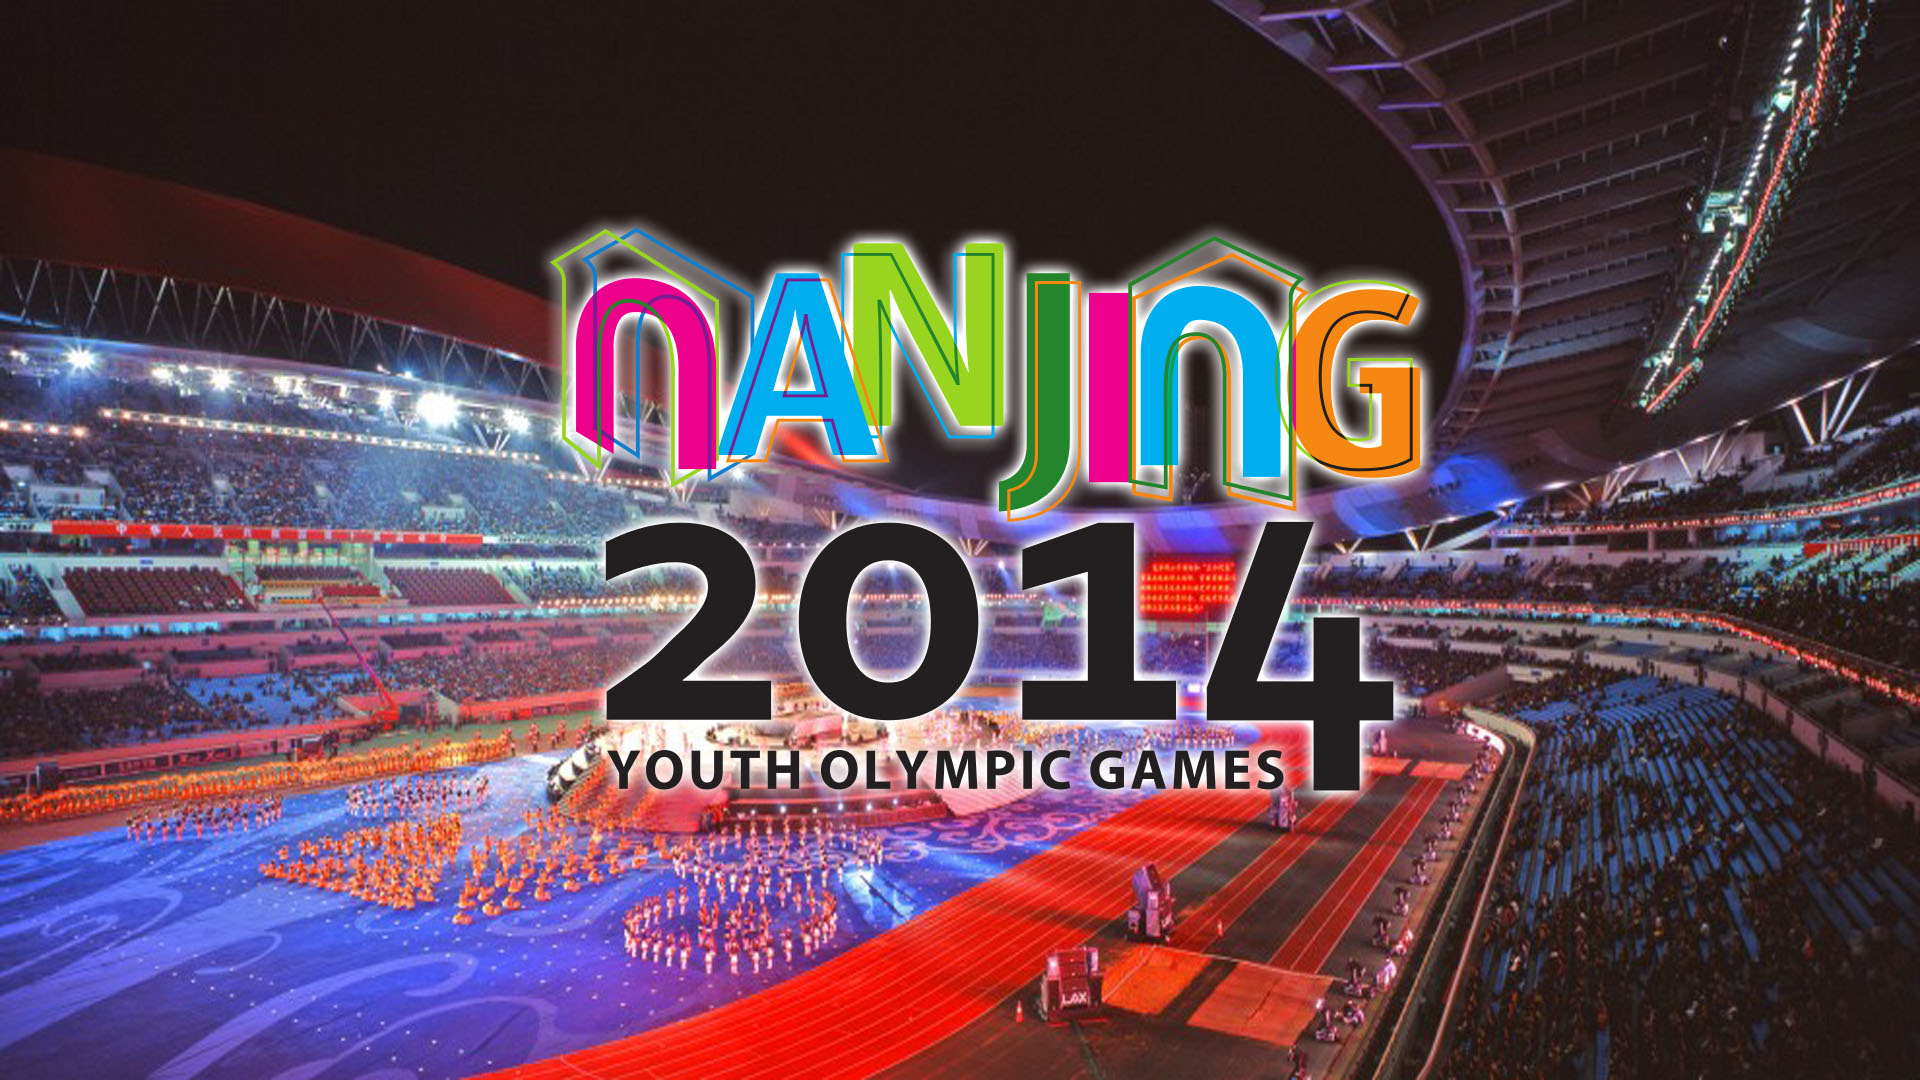 Nanjing Youth Olympics Events 2014